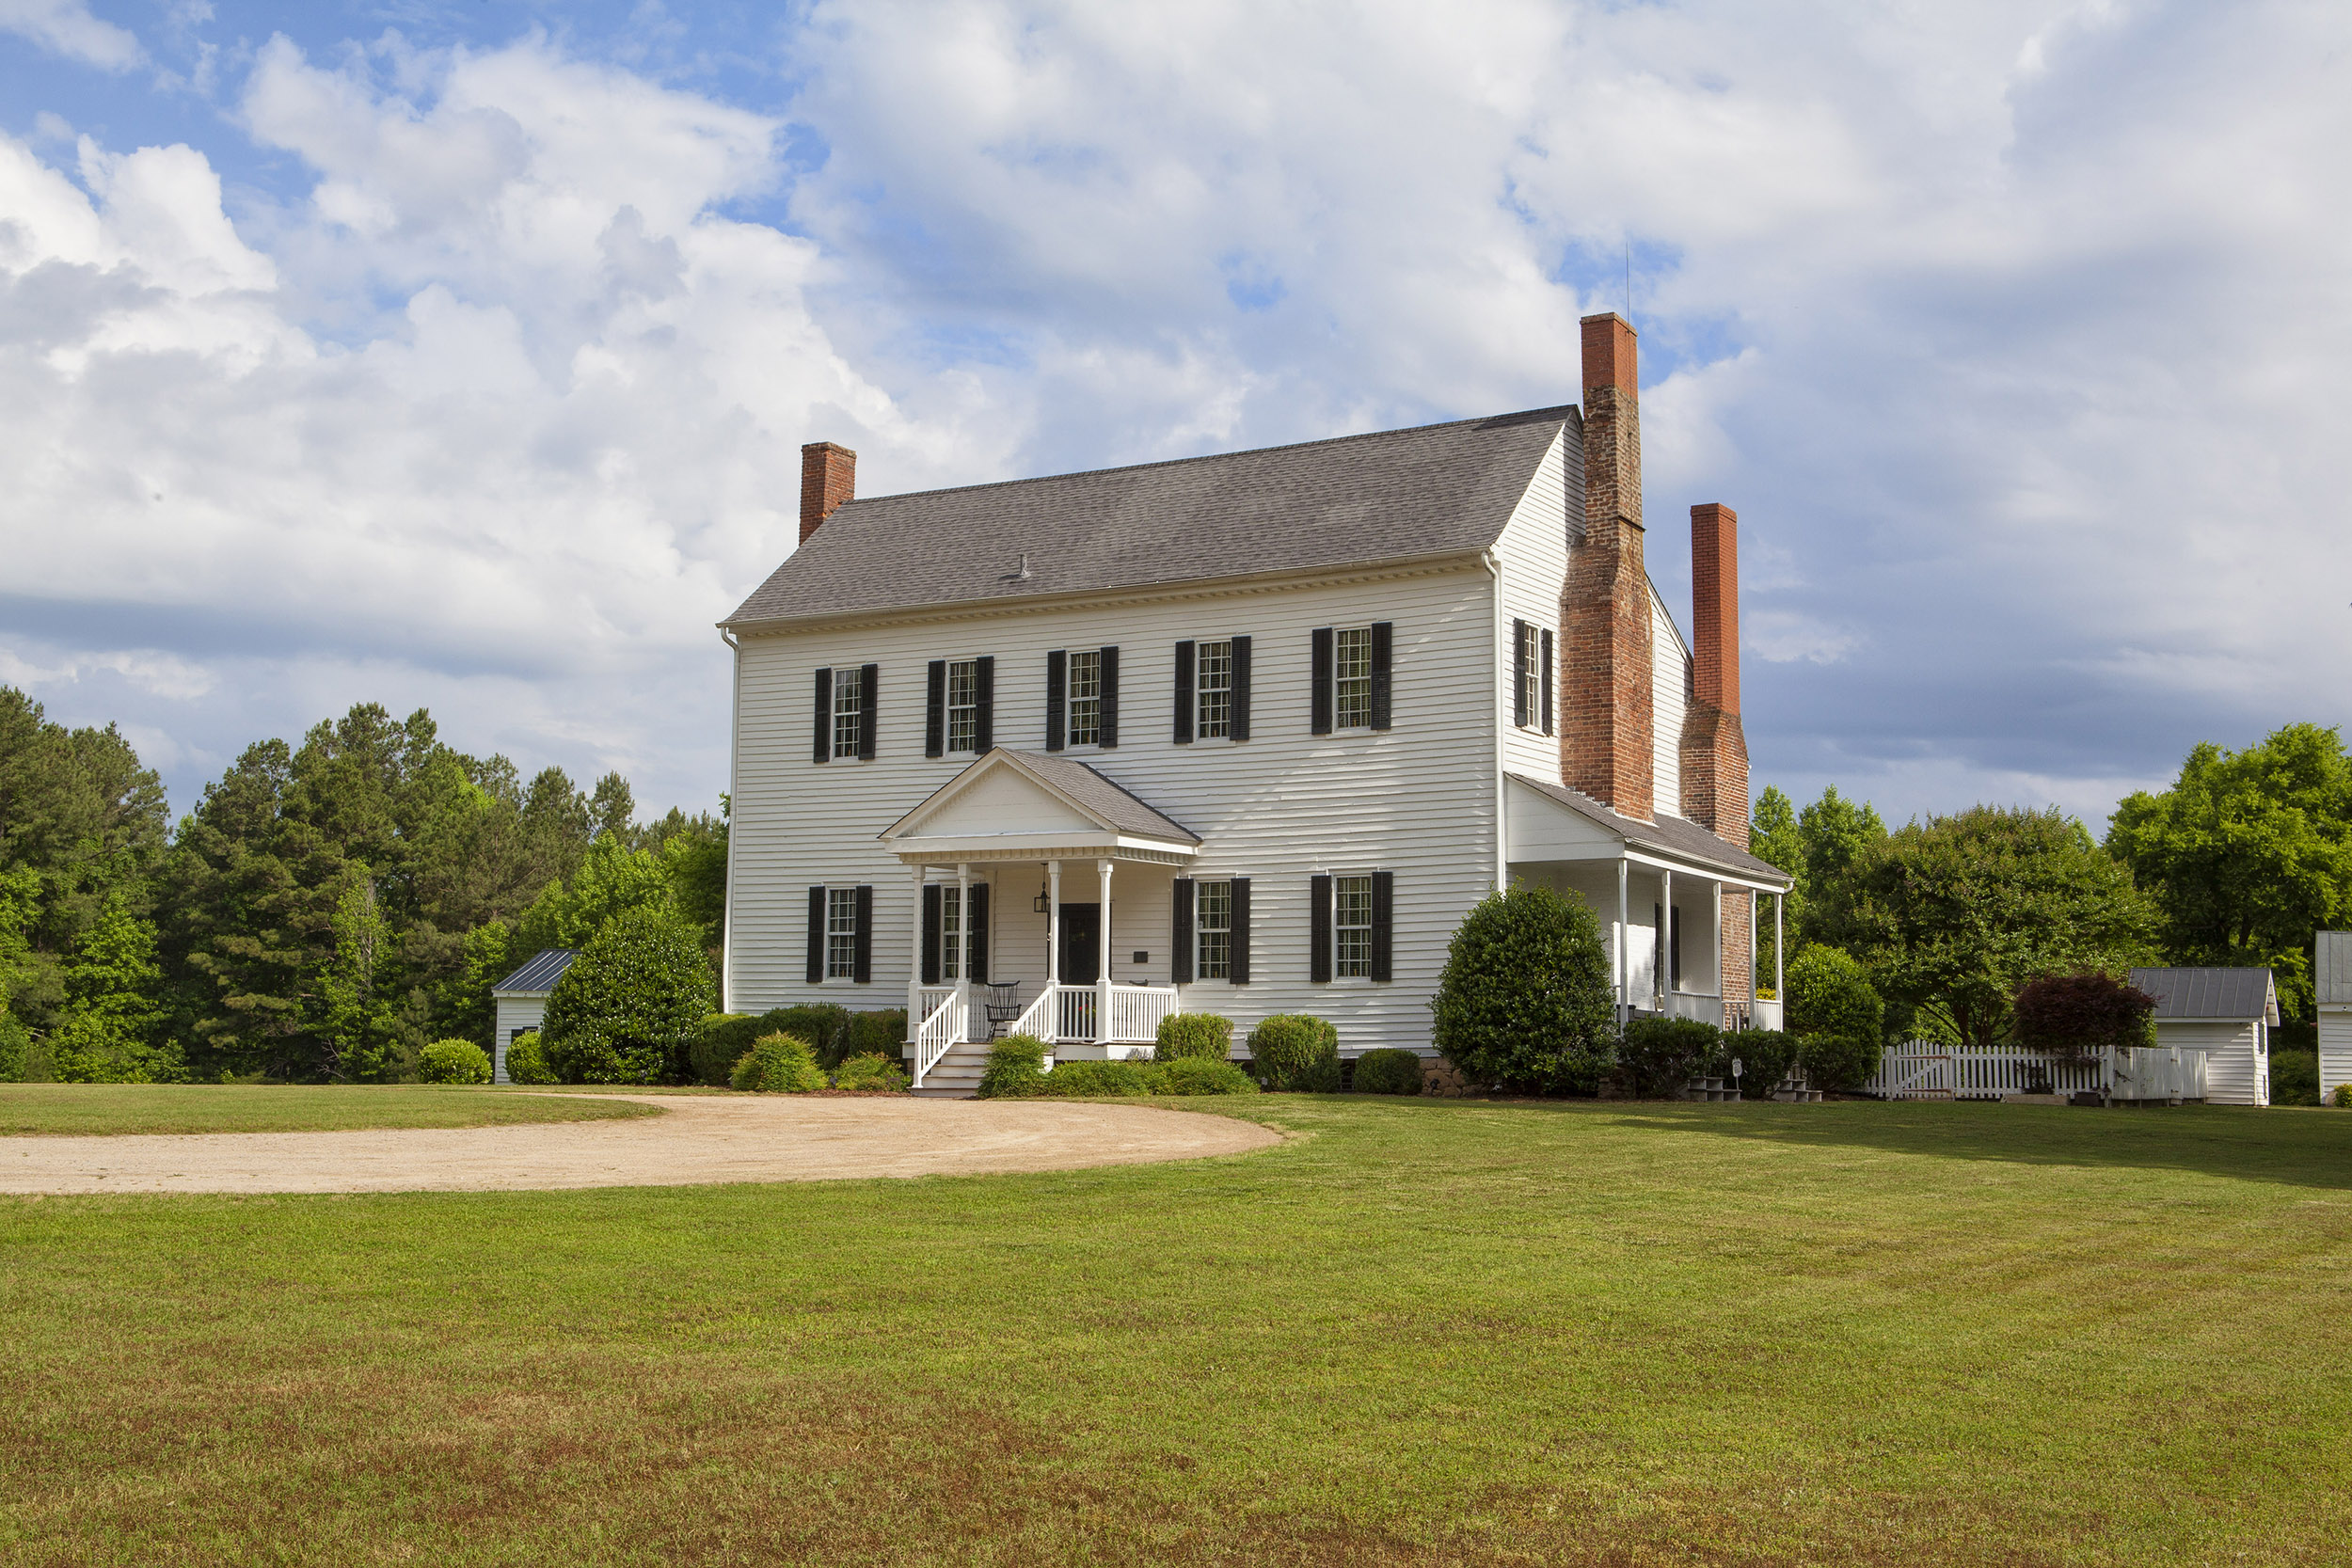 Historic Homes in North Carolina: Where to Start Your Search